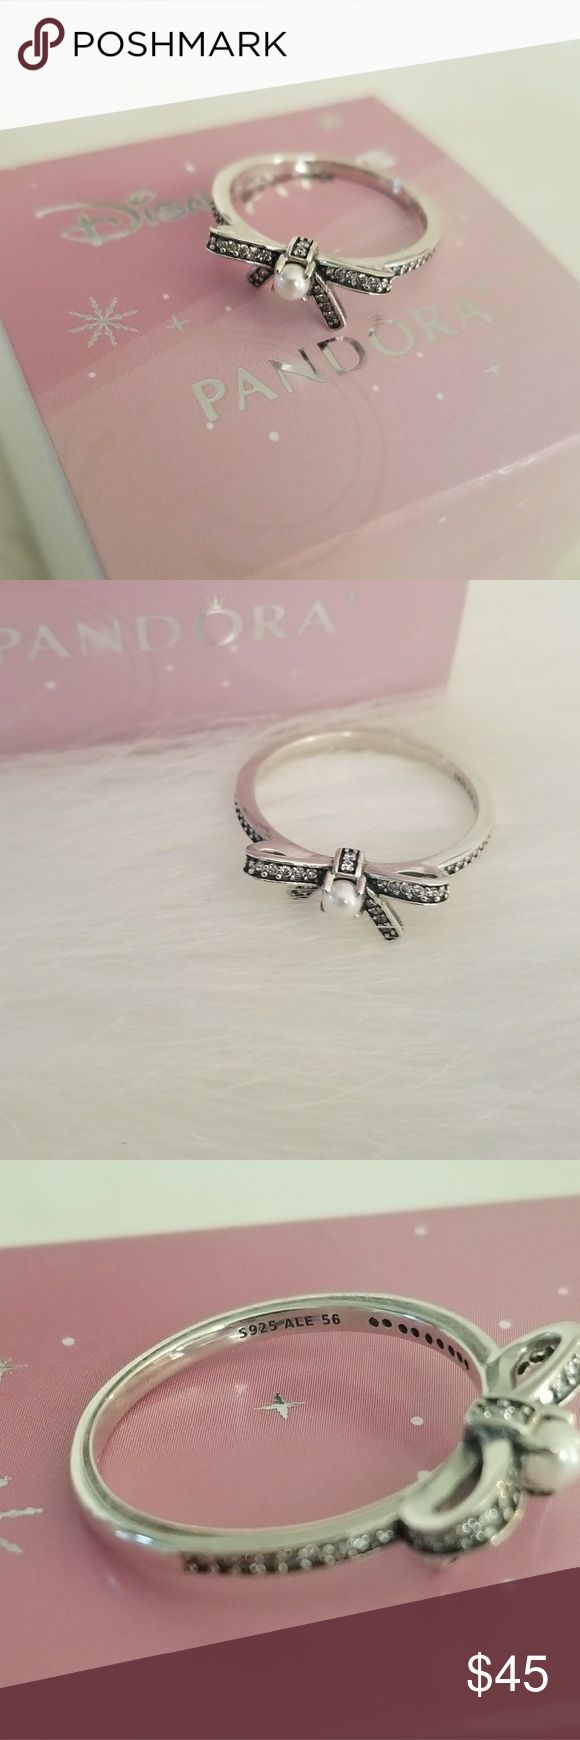 Pandora pearl ring New pandora pearl ring  Size 8 Comes with dust bag  Box not included Pandora Jewelry Rings